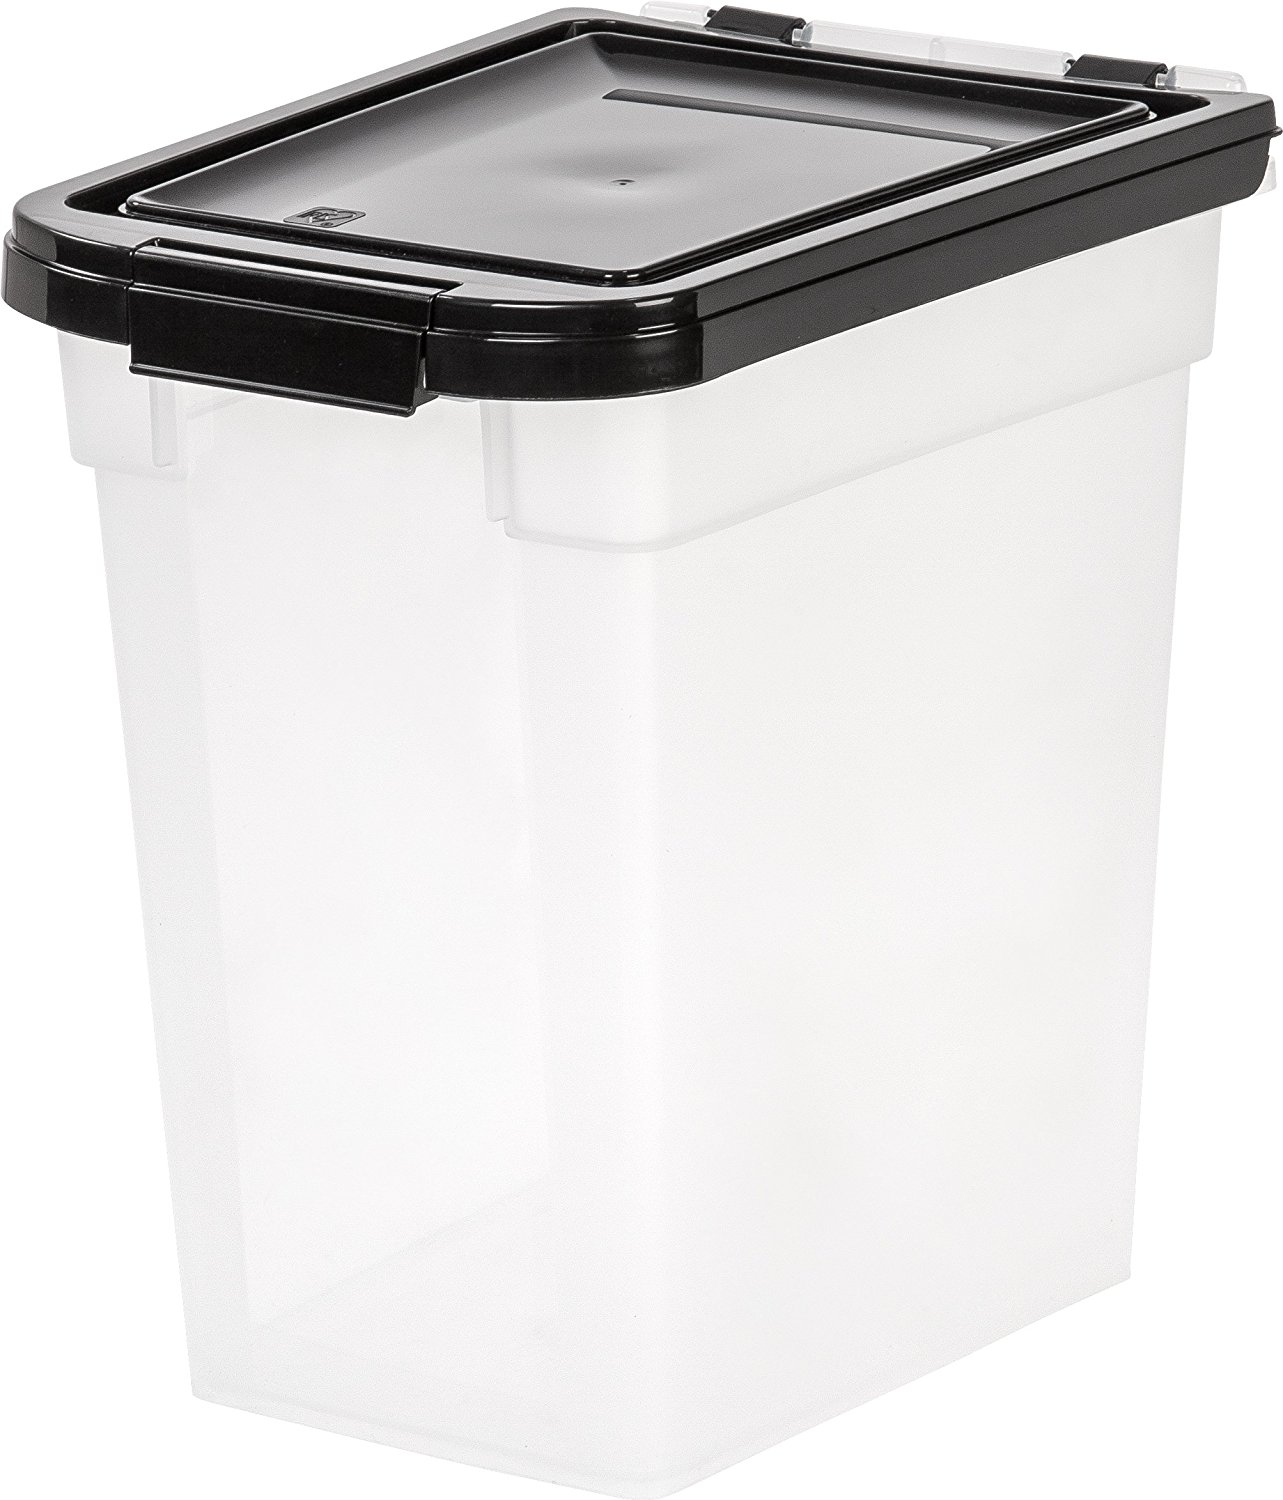 12.75 Quart Airtight Storage Container [Grain Storage]